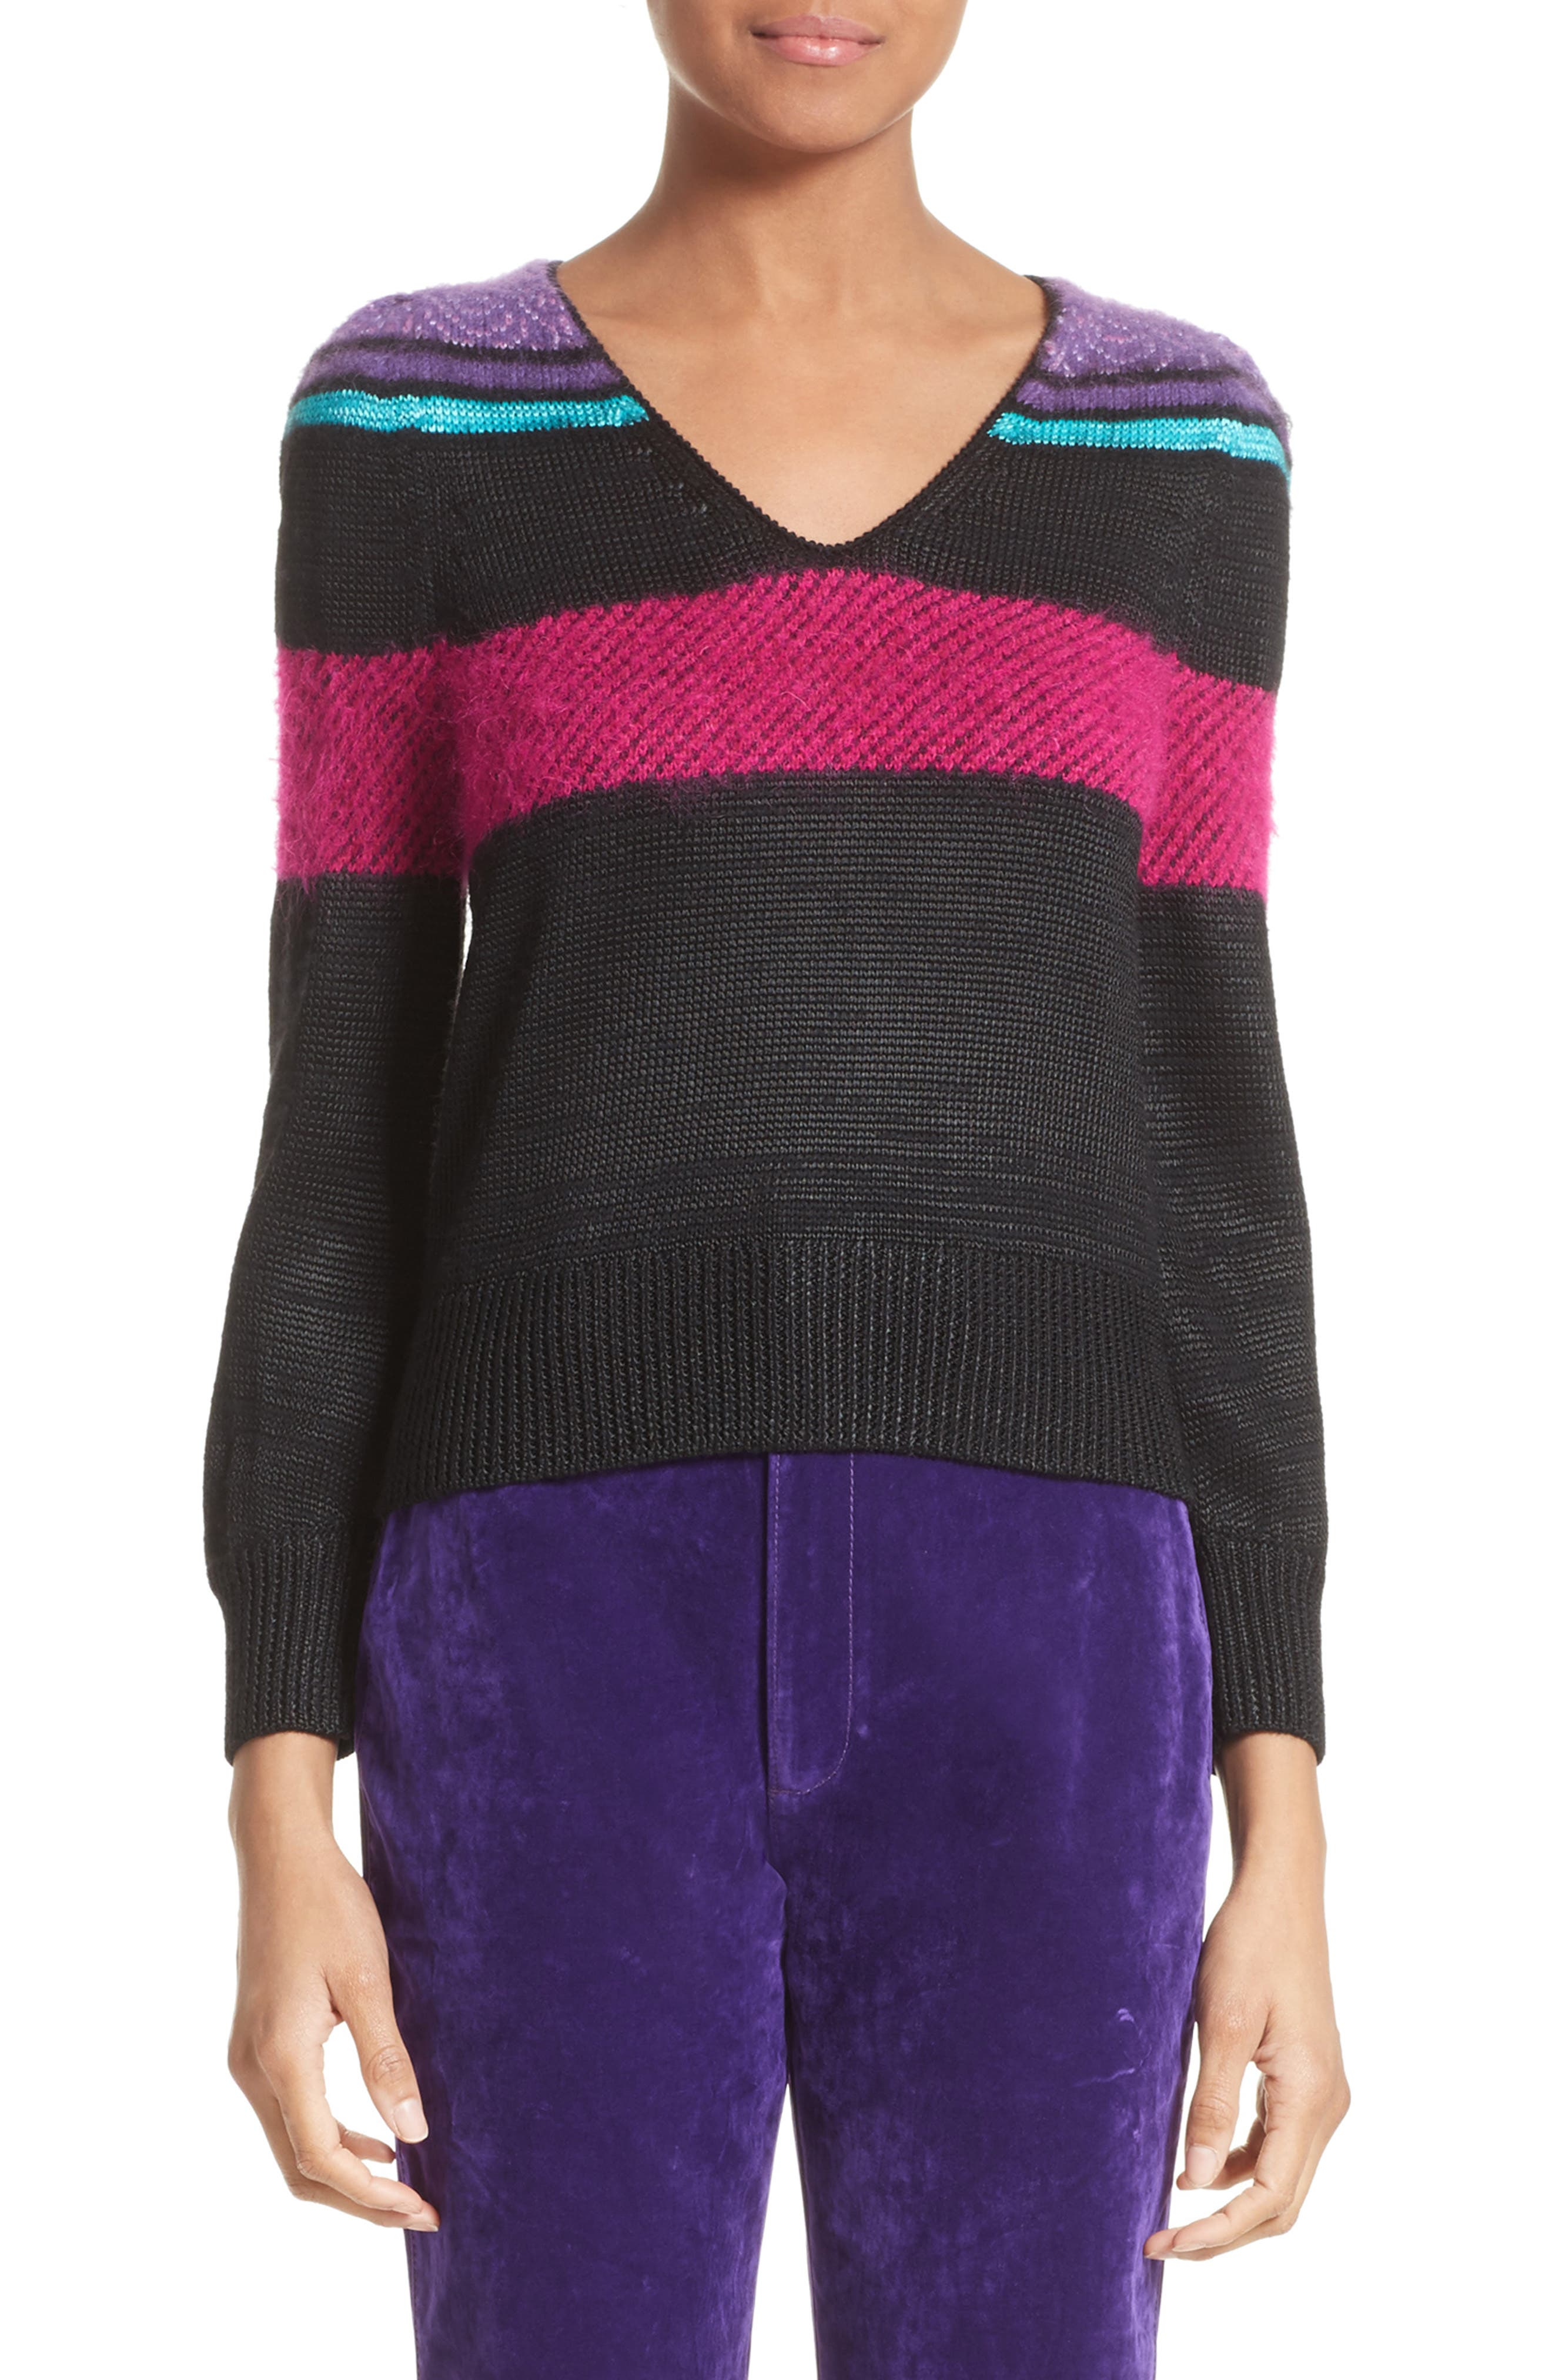 Main Image - MARC JACOBS '80s Stripe Knit Sweater